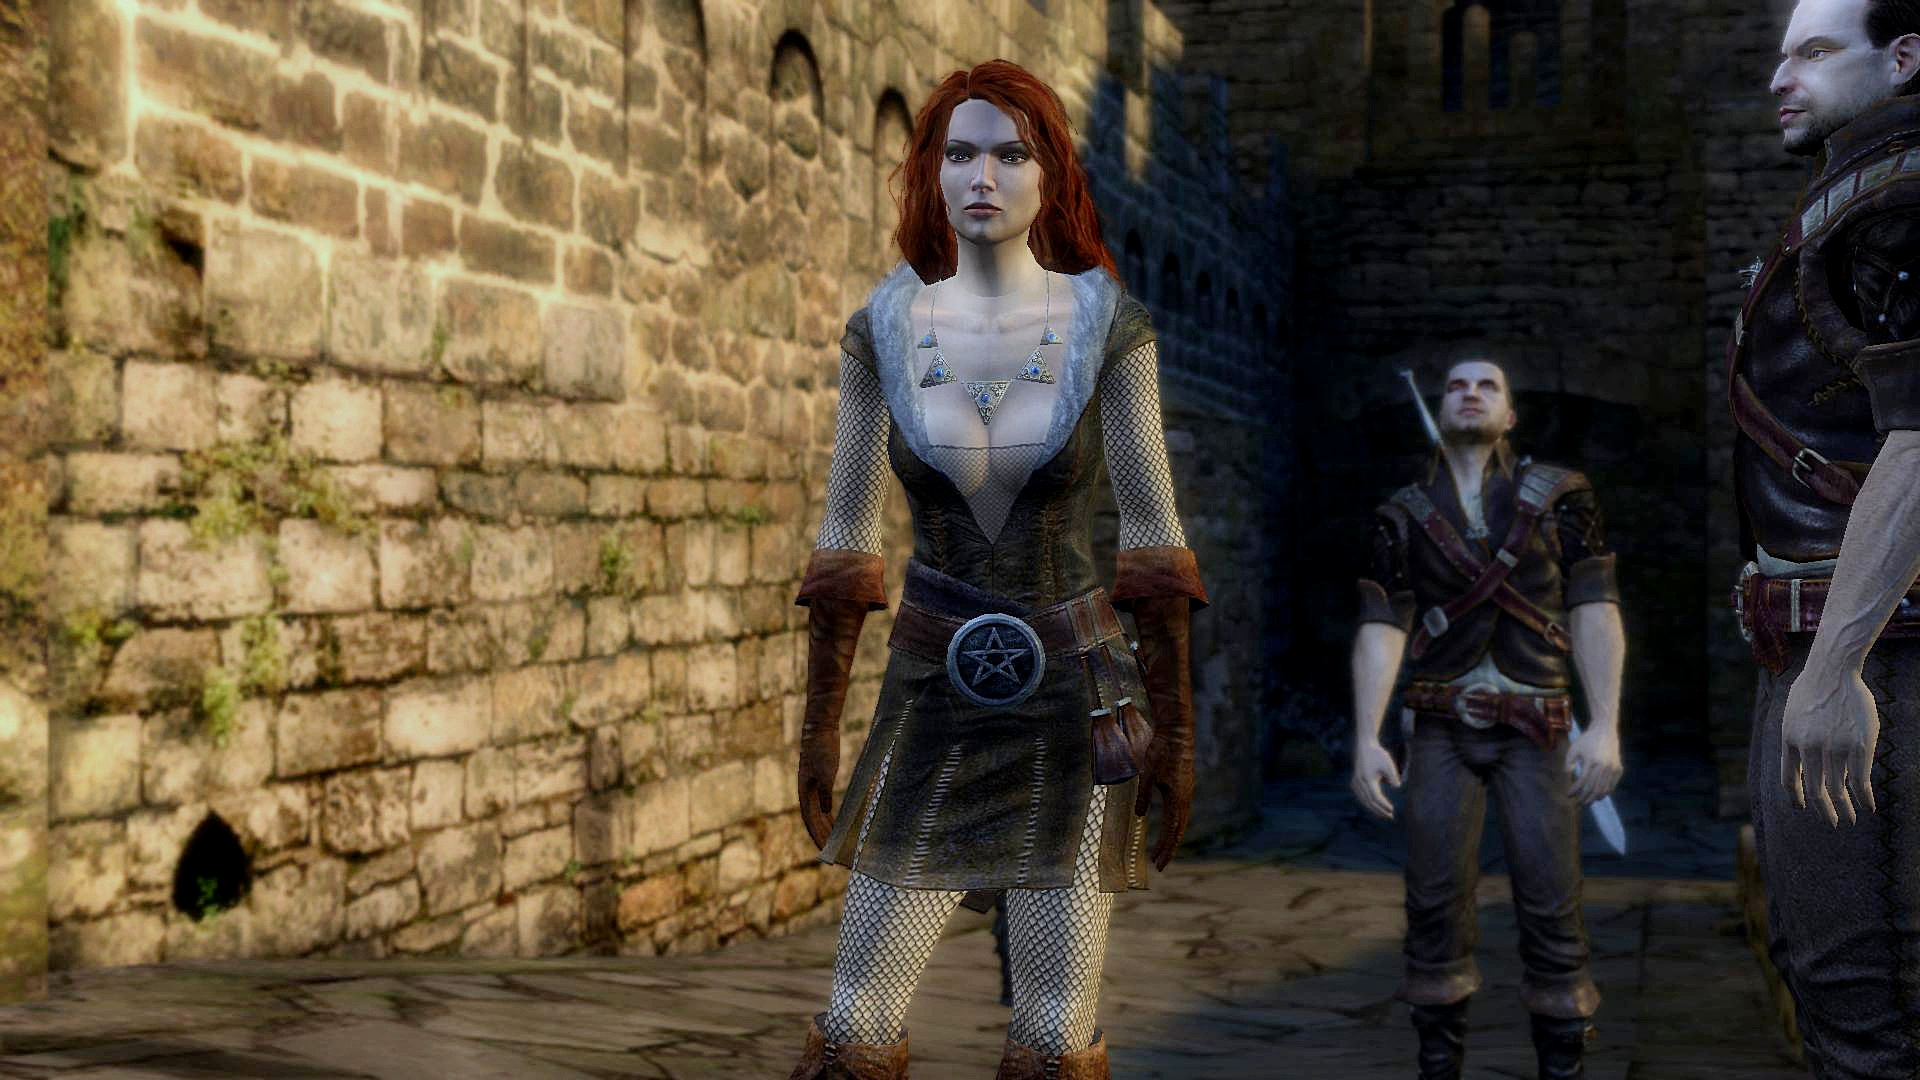 witcher 2016-01-28 21-01-43-00.jpg - Witcher, the